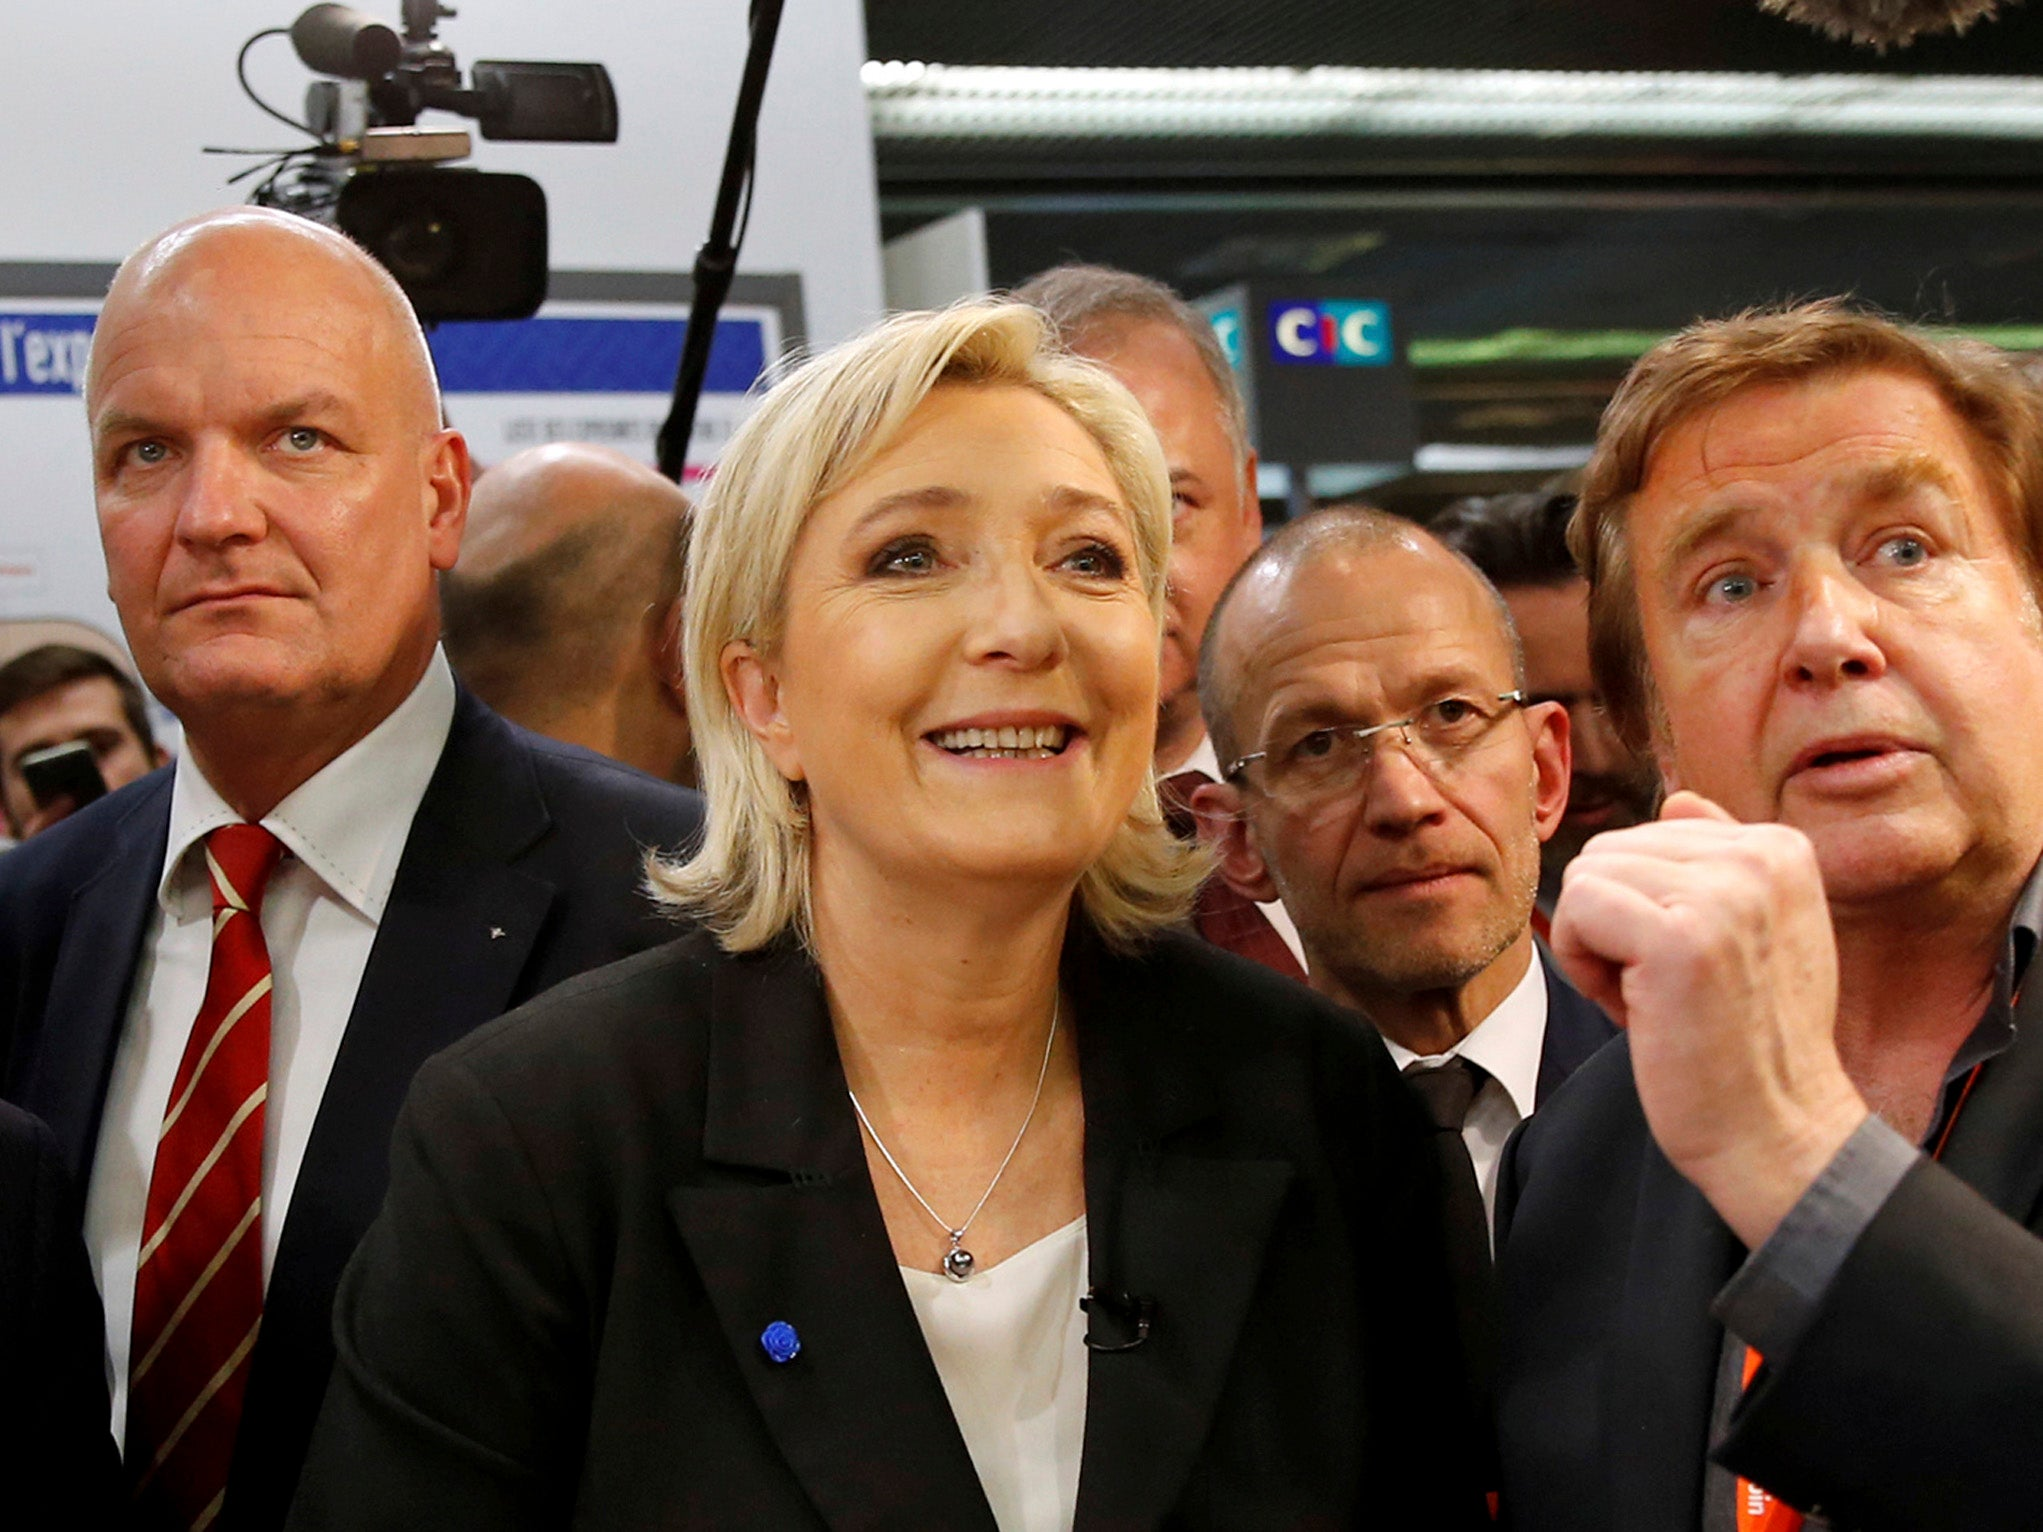 marine le pen retains lead in french presidential election polls marine le pen retains lead in french presidential election polls despite gains by emmanuel macron the independent